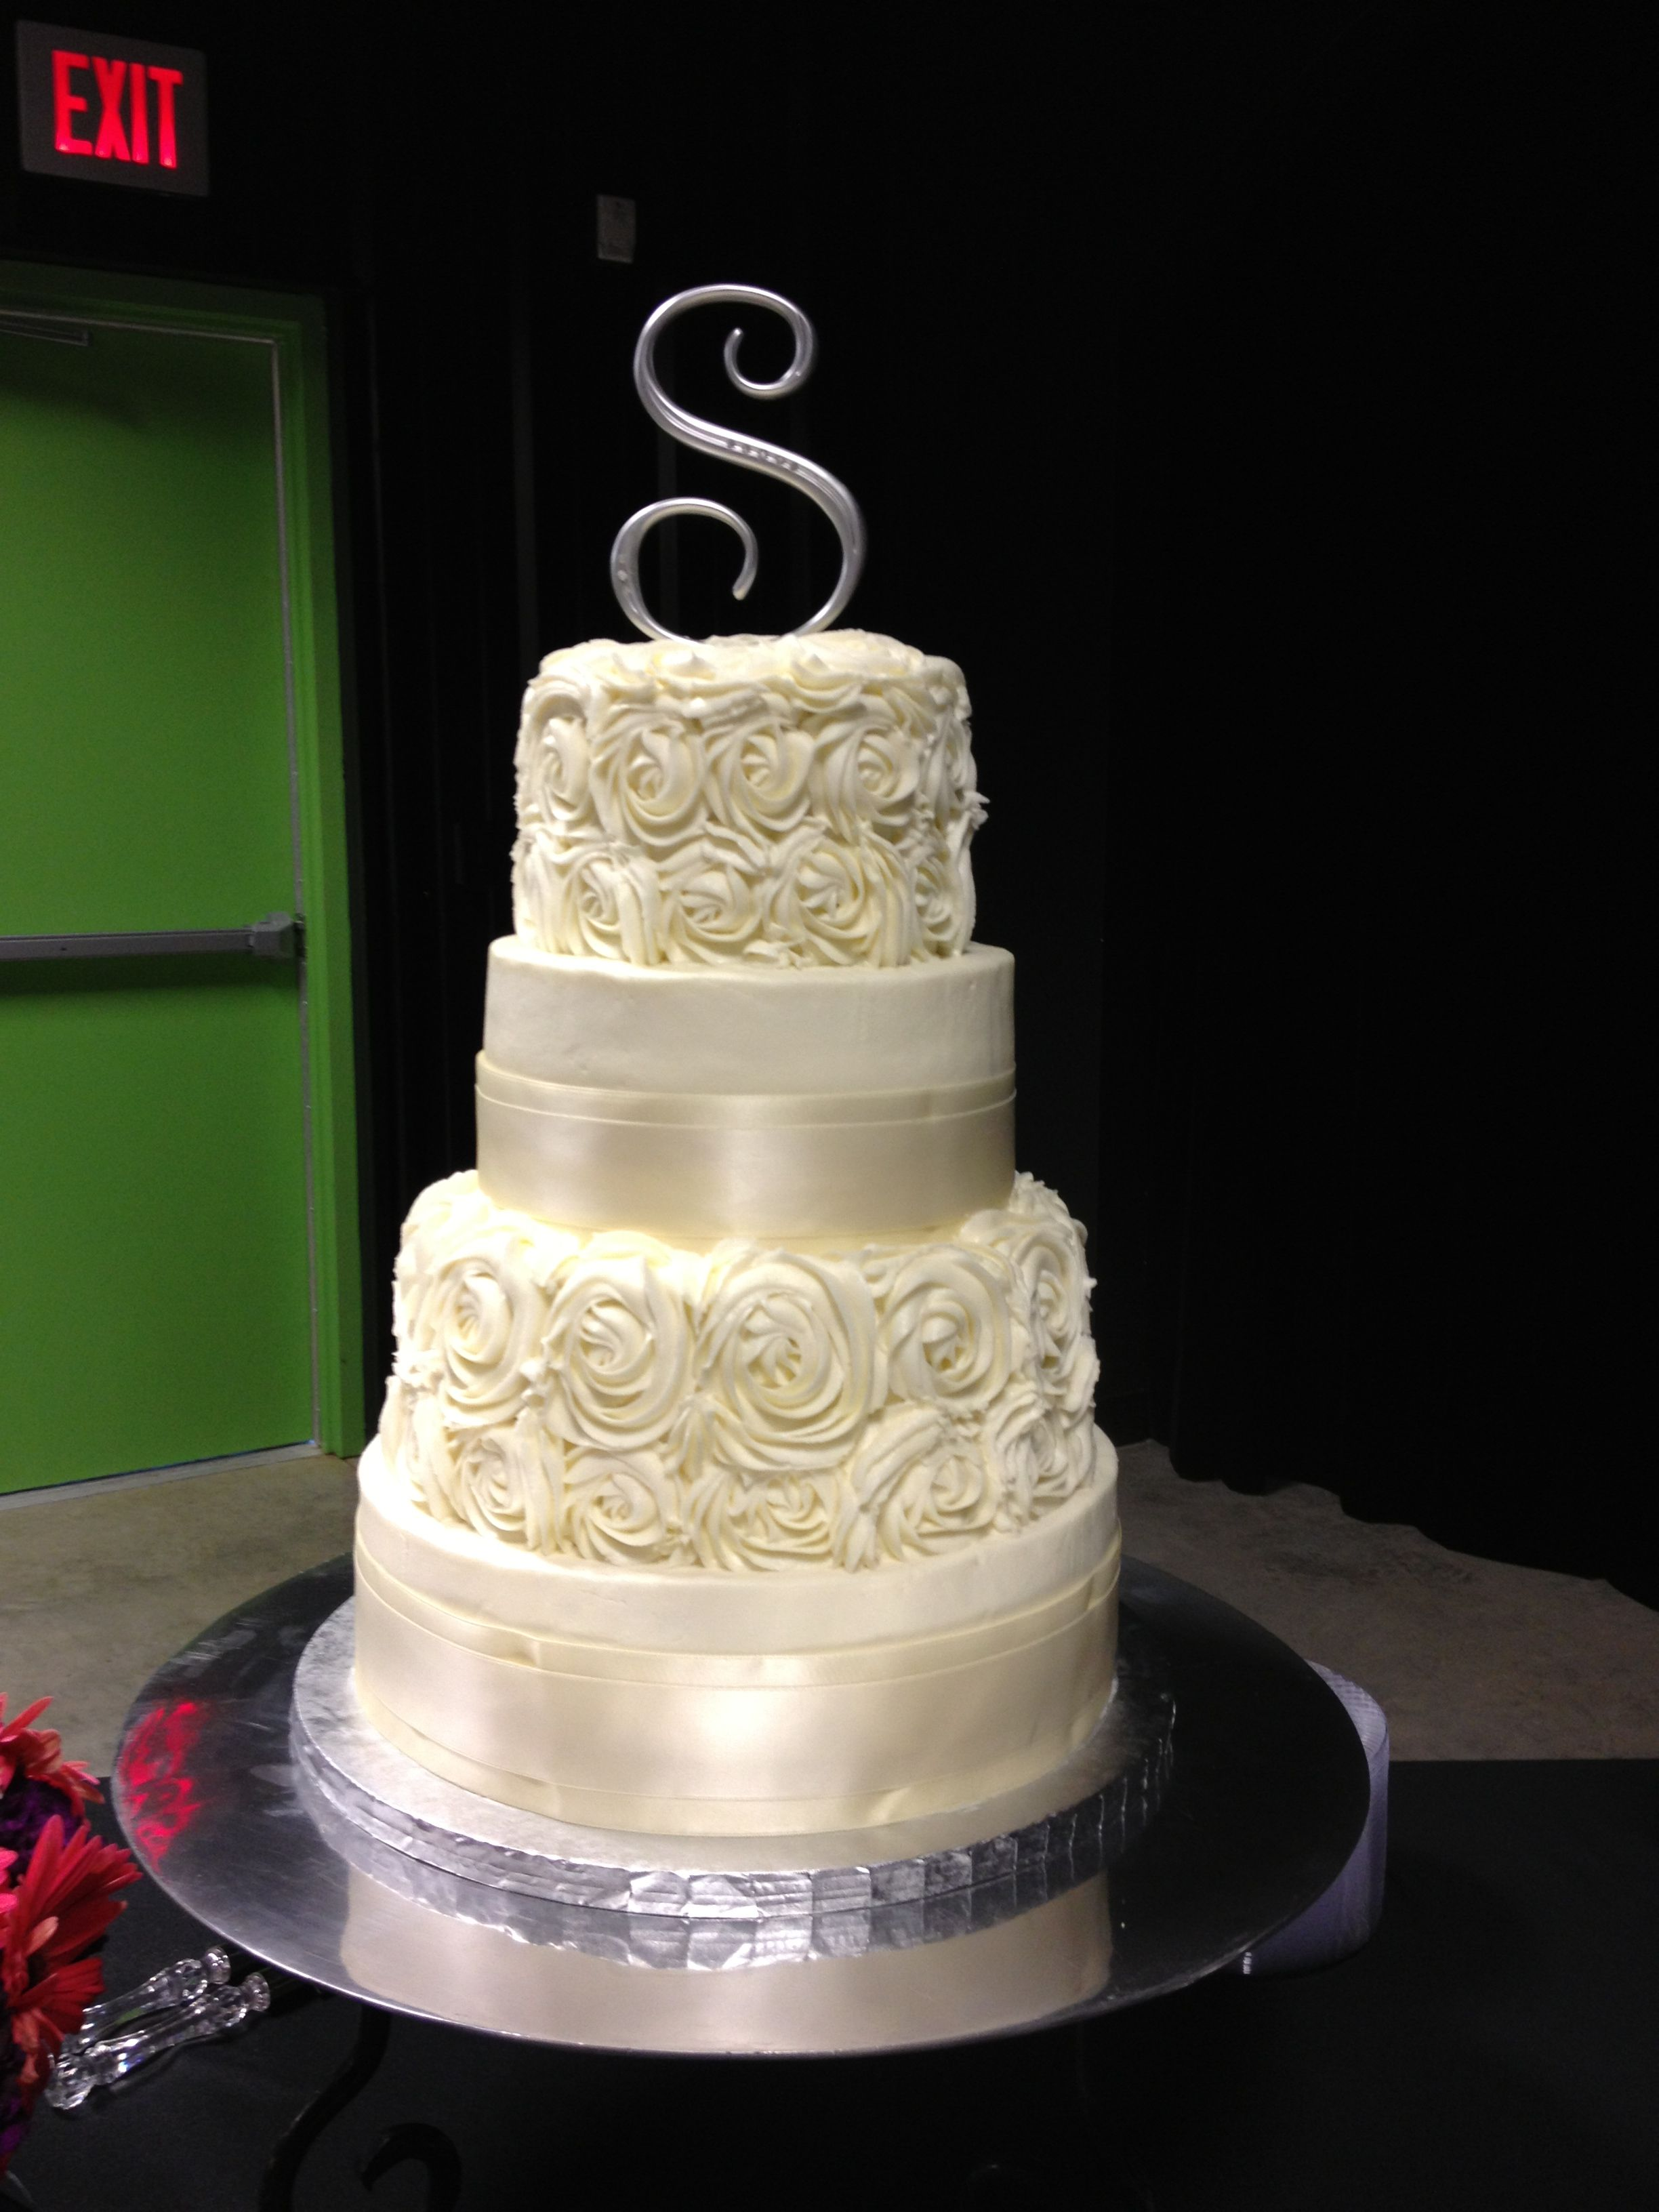 Options For Karen Gold Ribbon On 2 Tiers 1 W Swirl Roses Round Wedding Cakes